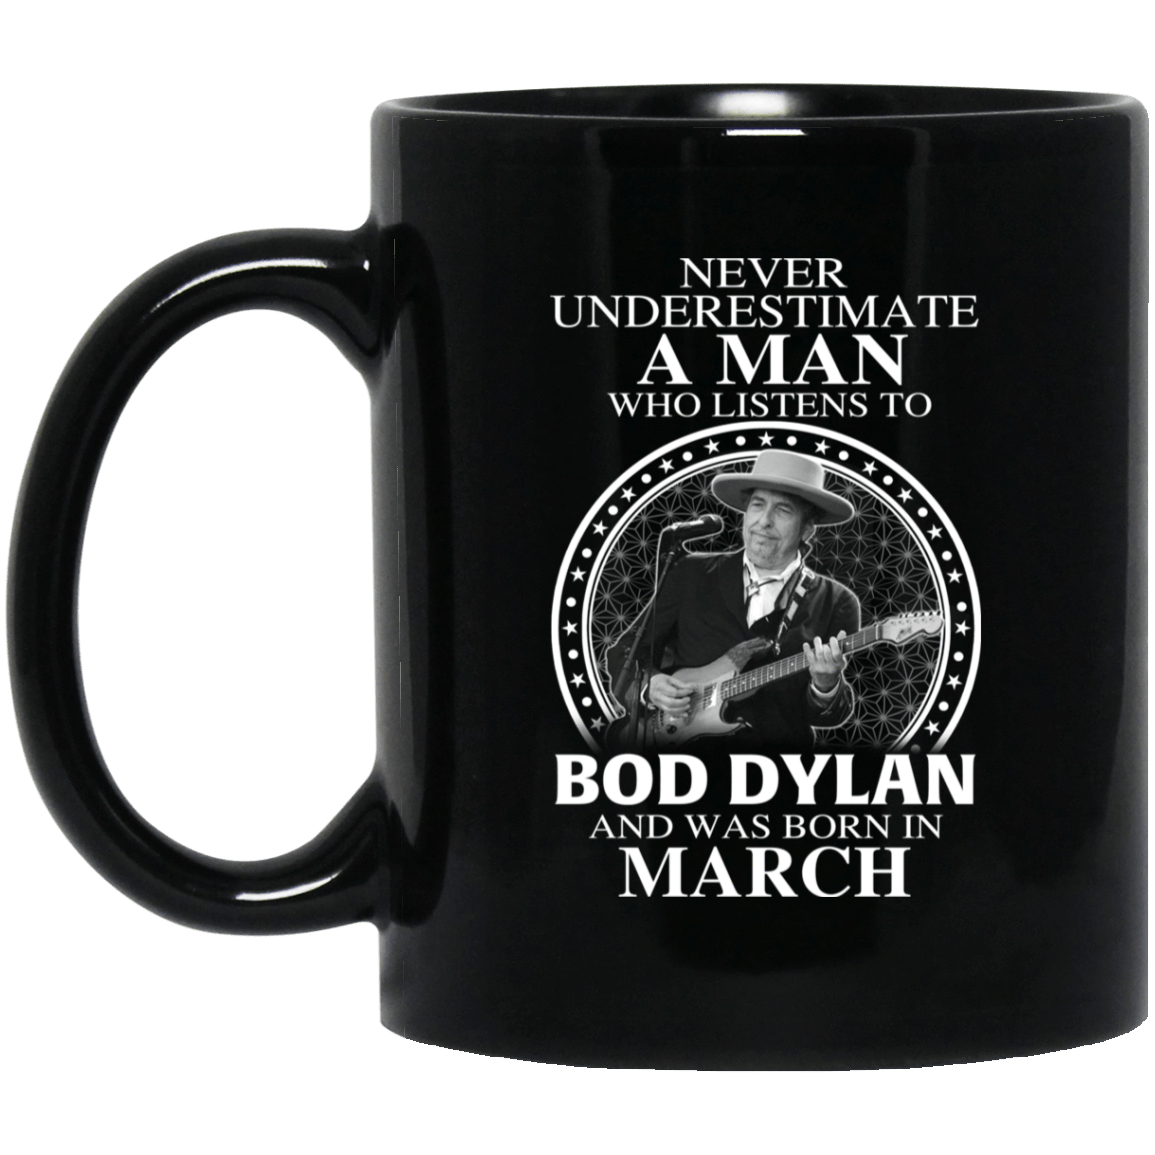 A Man Who Listens To Bob Dylan And Was Born In March Mug 1065-10181-76153601-49307 - Tee Ript